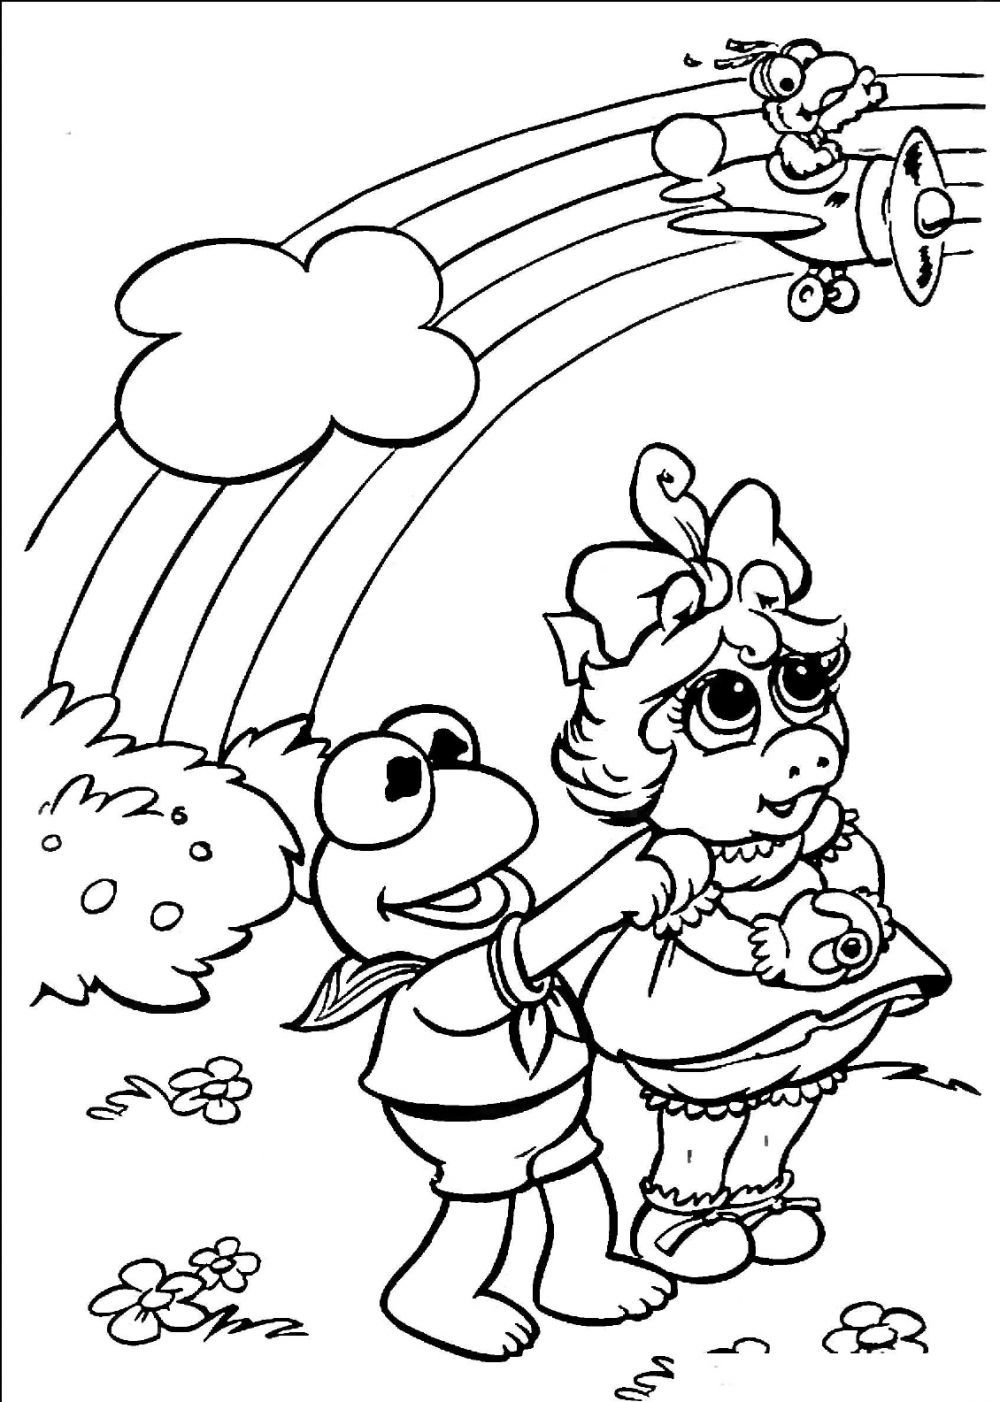 Muppet Babies Coloring Pages | Coloring Pages | Pinterest | Muppet ...